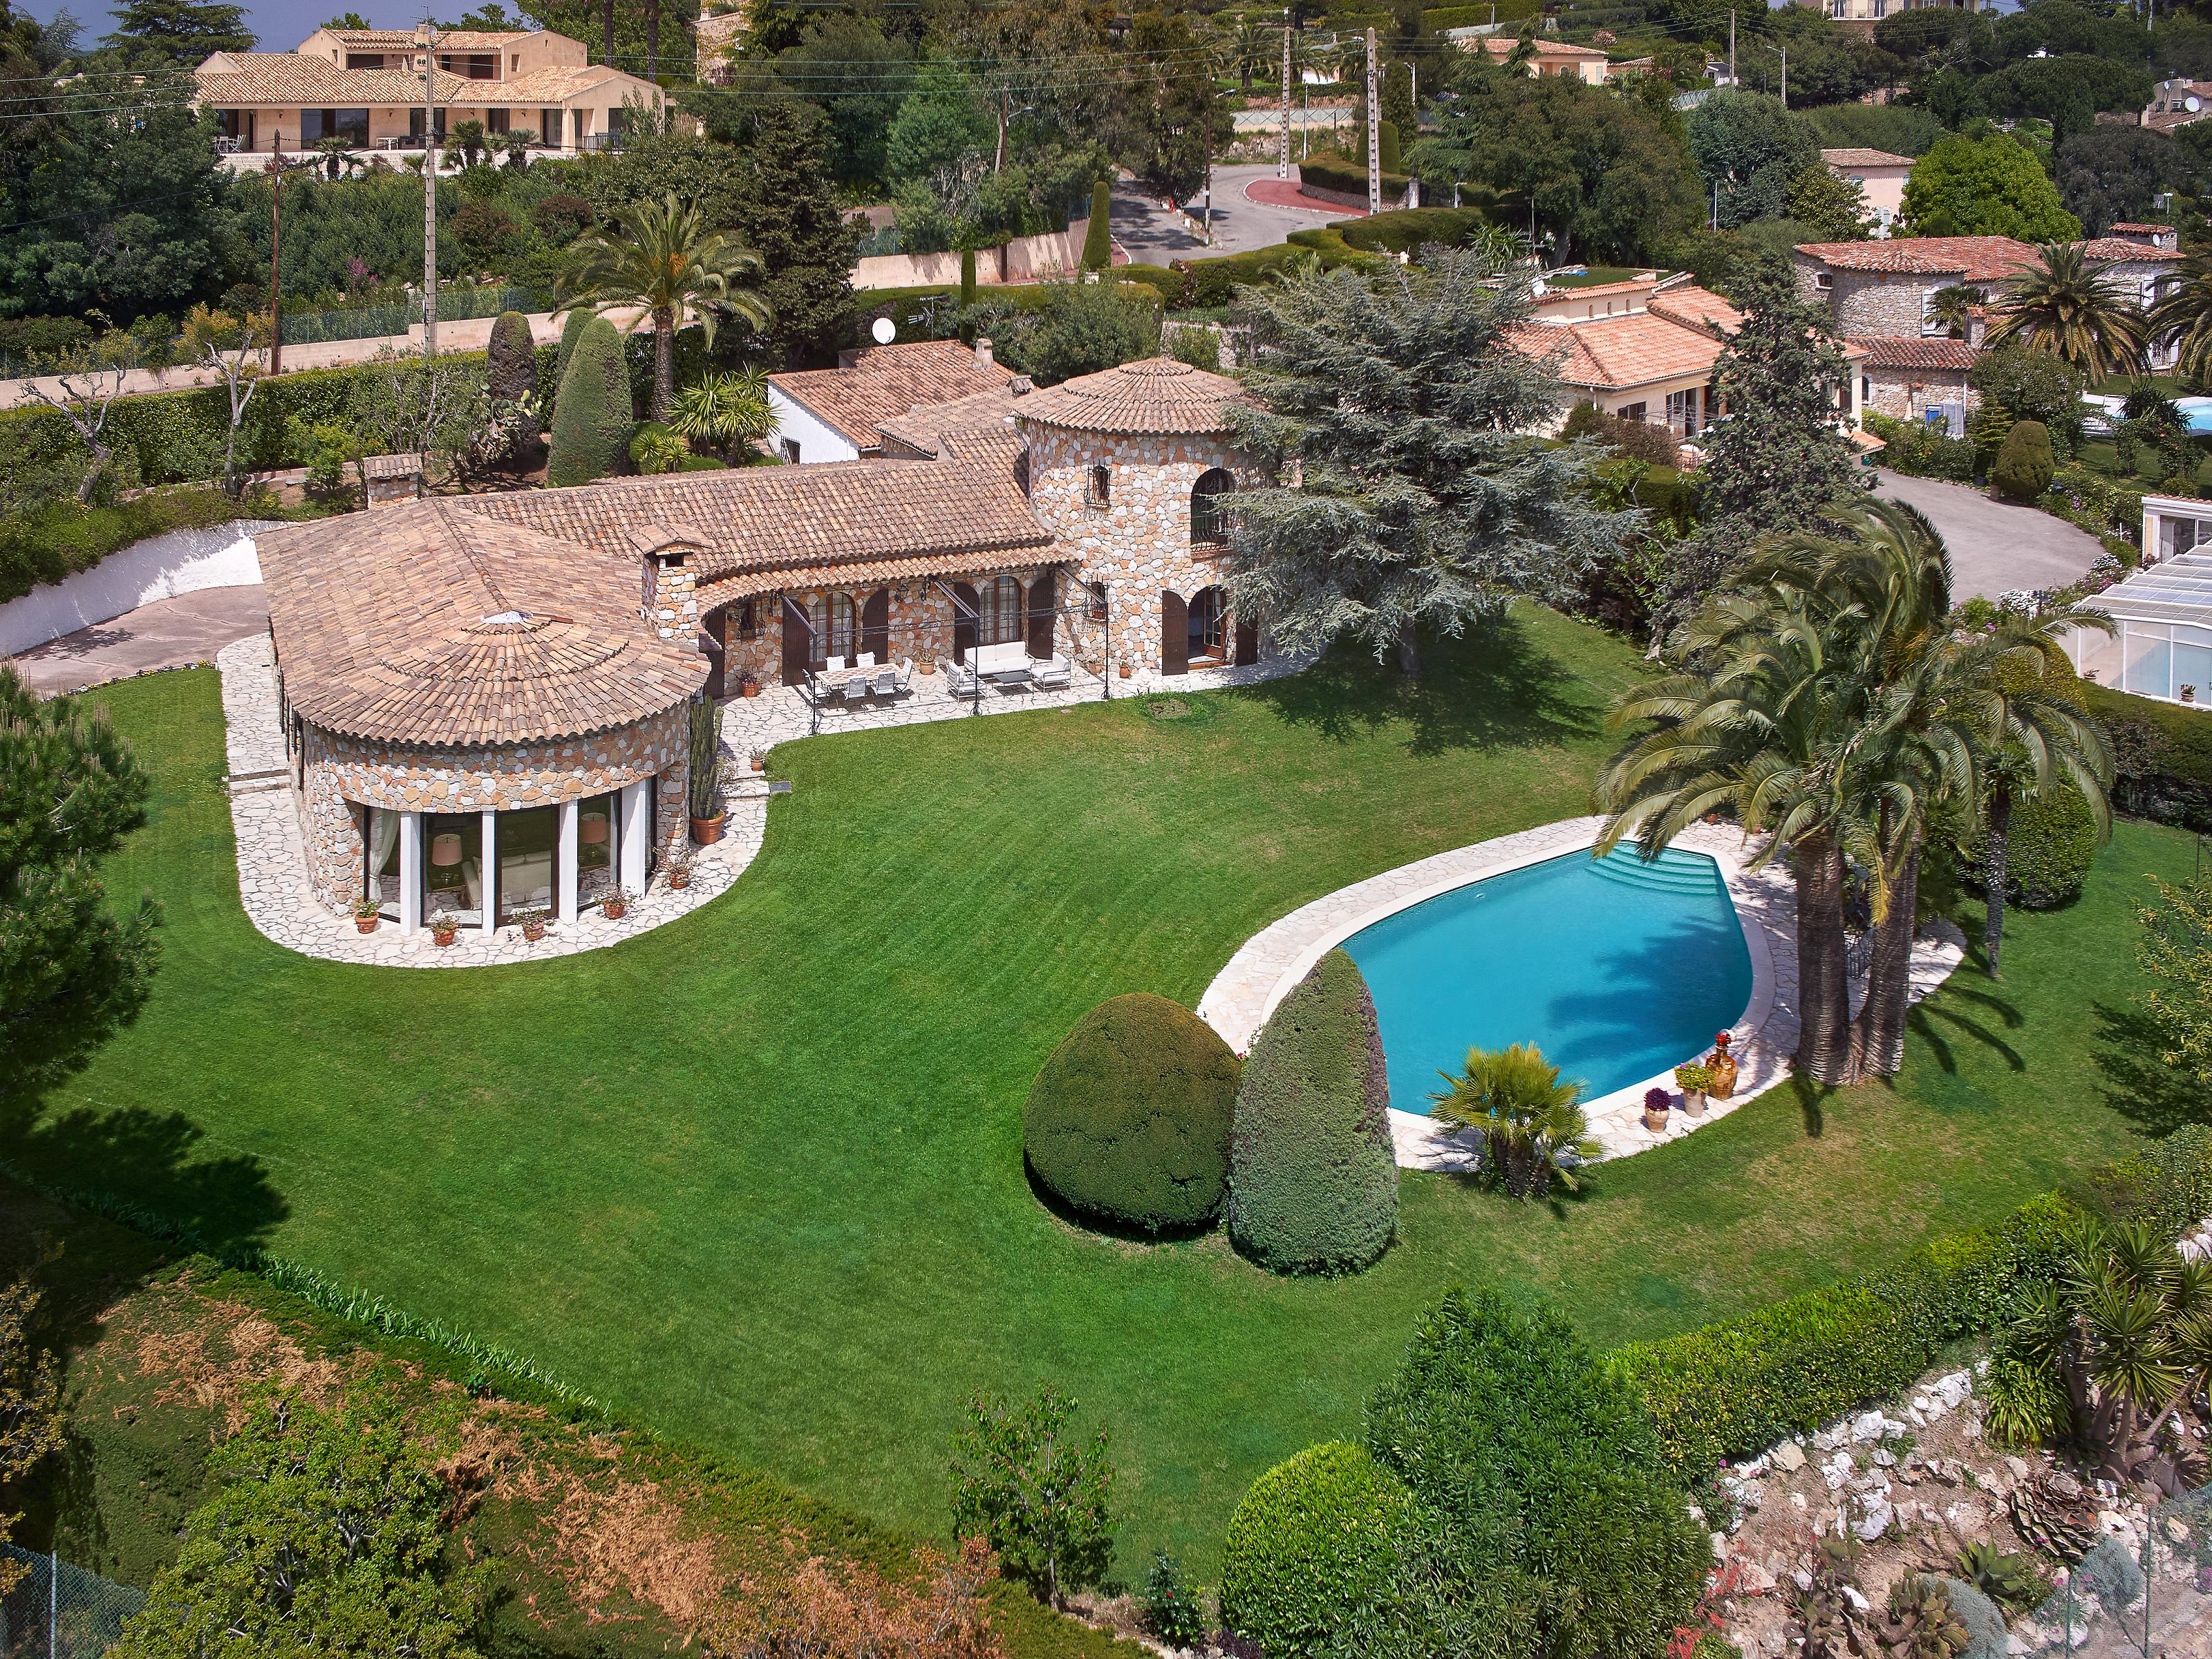 Single Family Home for Sale at Authentic stone house for sale in Cannes Cannes, Provence-Alpes-Cote D'Azur 06400 France